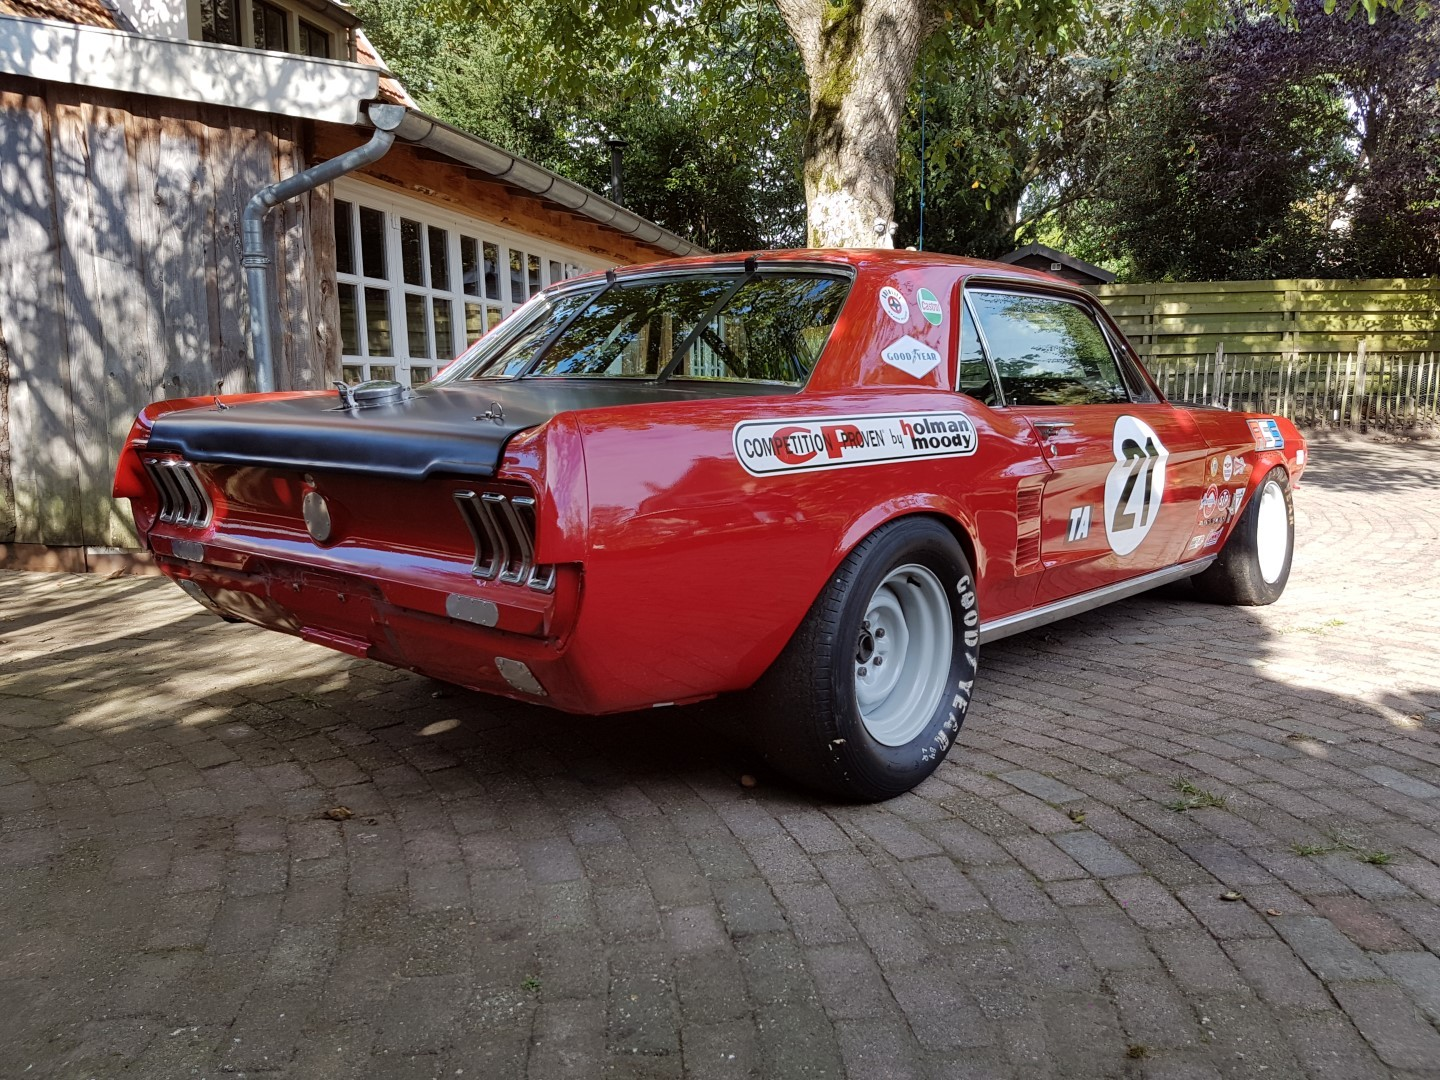 1967 Mustang Trans Am Series Road Race Car Speed Monkey Cars